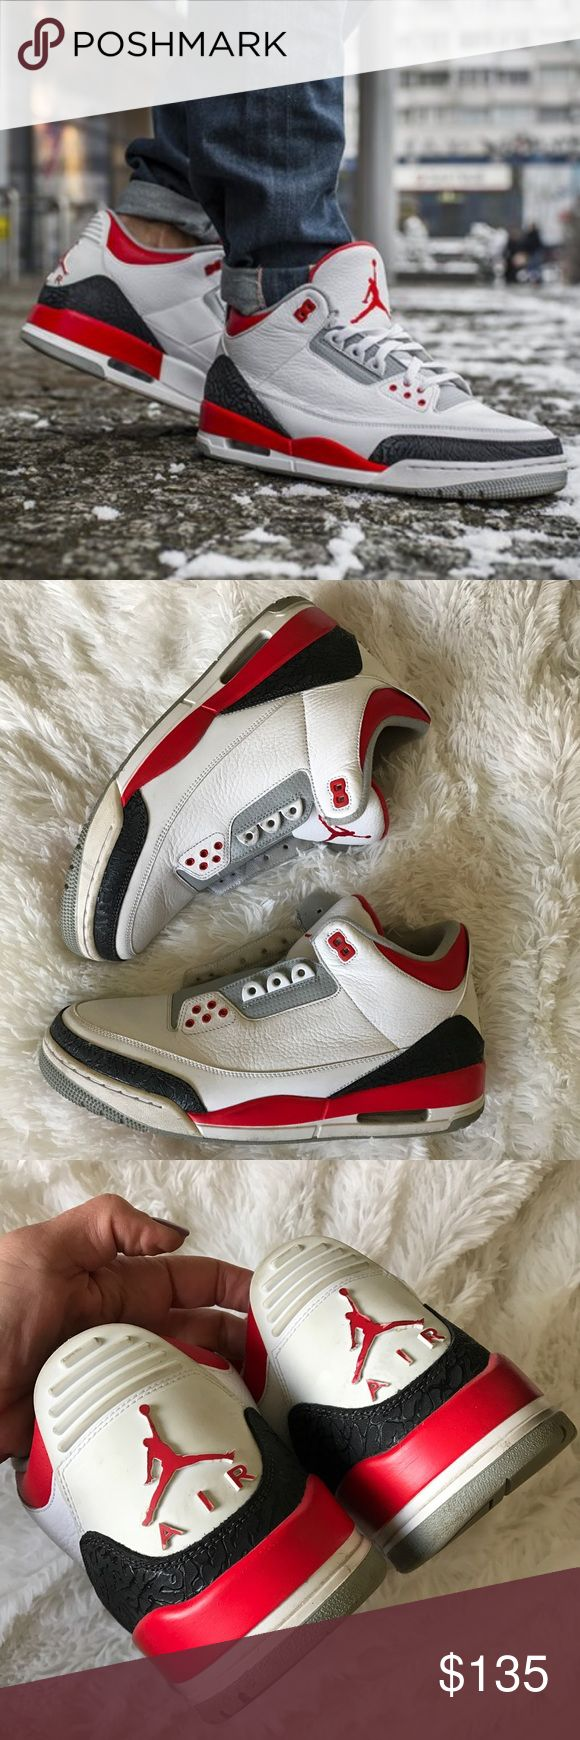 Nike AIR JORDAN RETRO 3 'FIRE RED' 2013 sz 12 men 100% authentic used Nike AIR JORDAN RETRO 3 'FIRE RED' 2013 SIZE 12 men's ...SELLING AS IS! No box. NO shoe strings. NO FLAWS. Just needs a good cleaning. Please use the zoom feature to inspect the shoe prior to purchase. Outsole paint is NOT cracked or chipped. No yellowing, minor creasing. Smoke free home. Bundle items to save. REASONABLE OFFERS WILL ONLY BE CONSIDERED THROUGH THE OFFER BUTTON. offers in comments will be IGNORED. Nike Shoes…